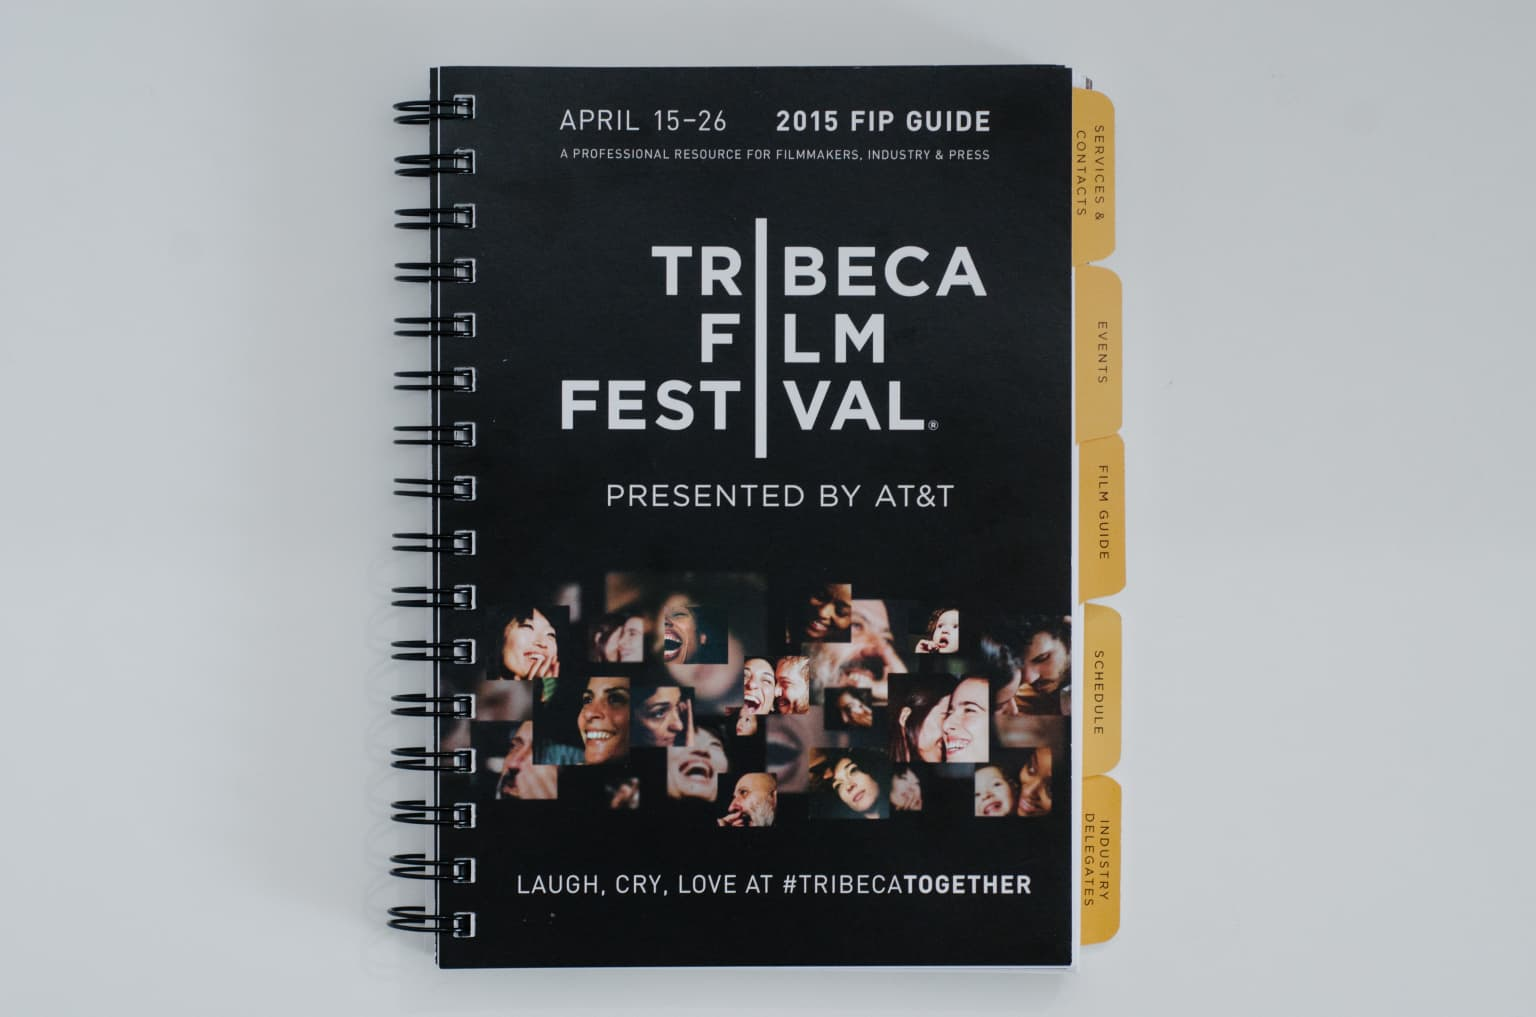 Tribeca Film Festival Publications